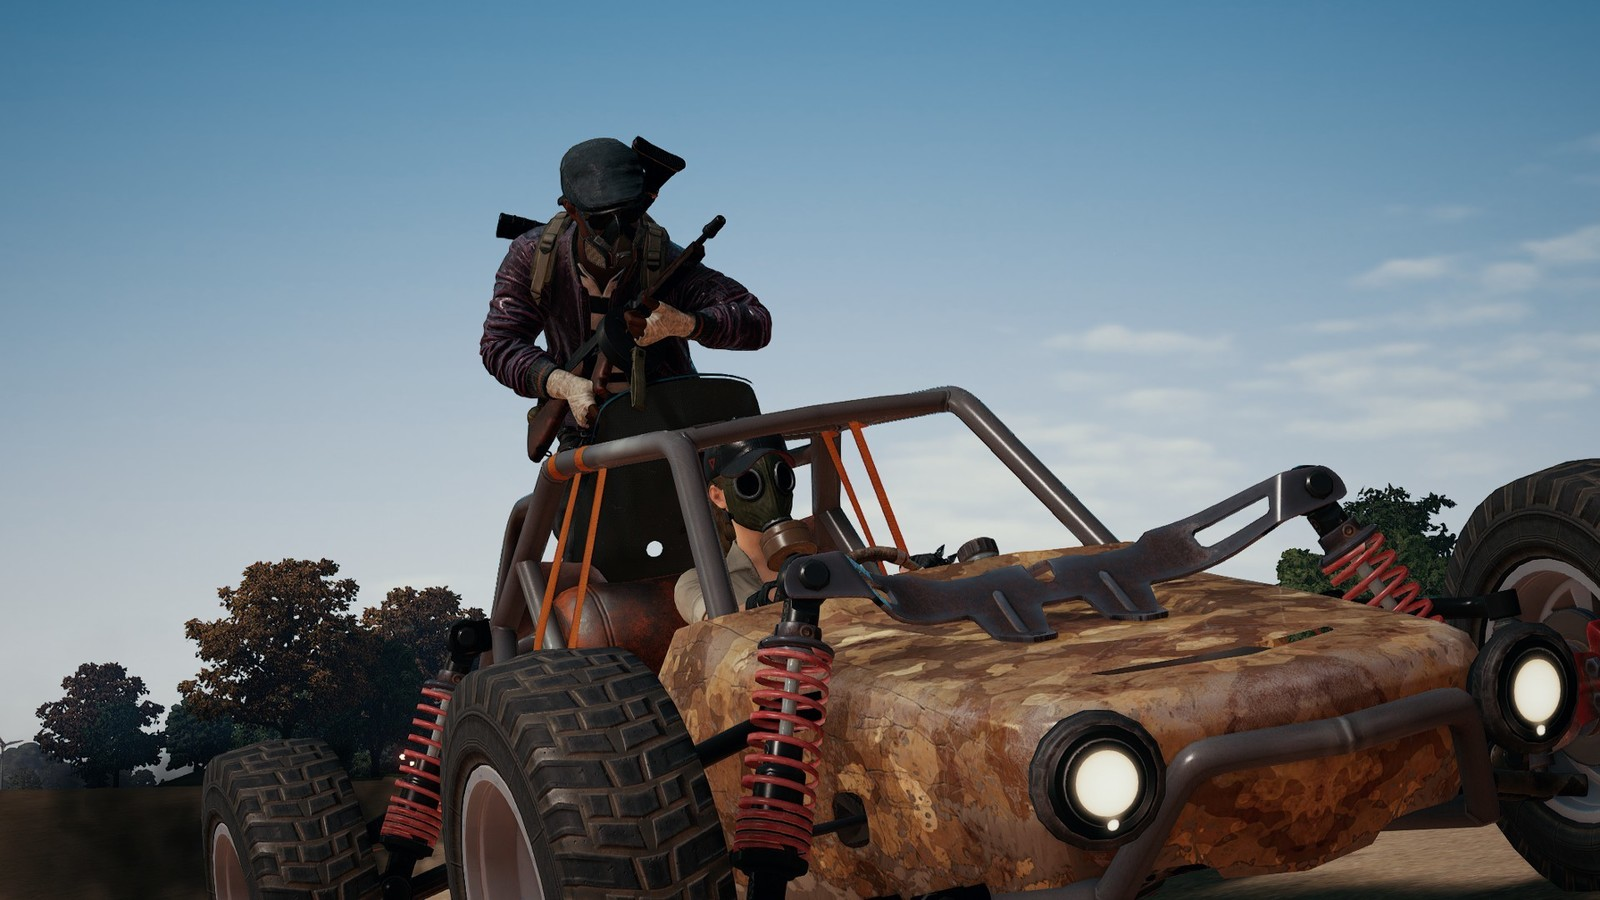 PlayerUnknown's Battlegrounds for PS4 image